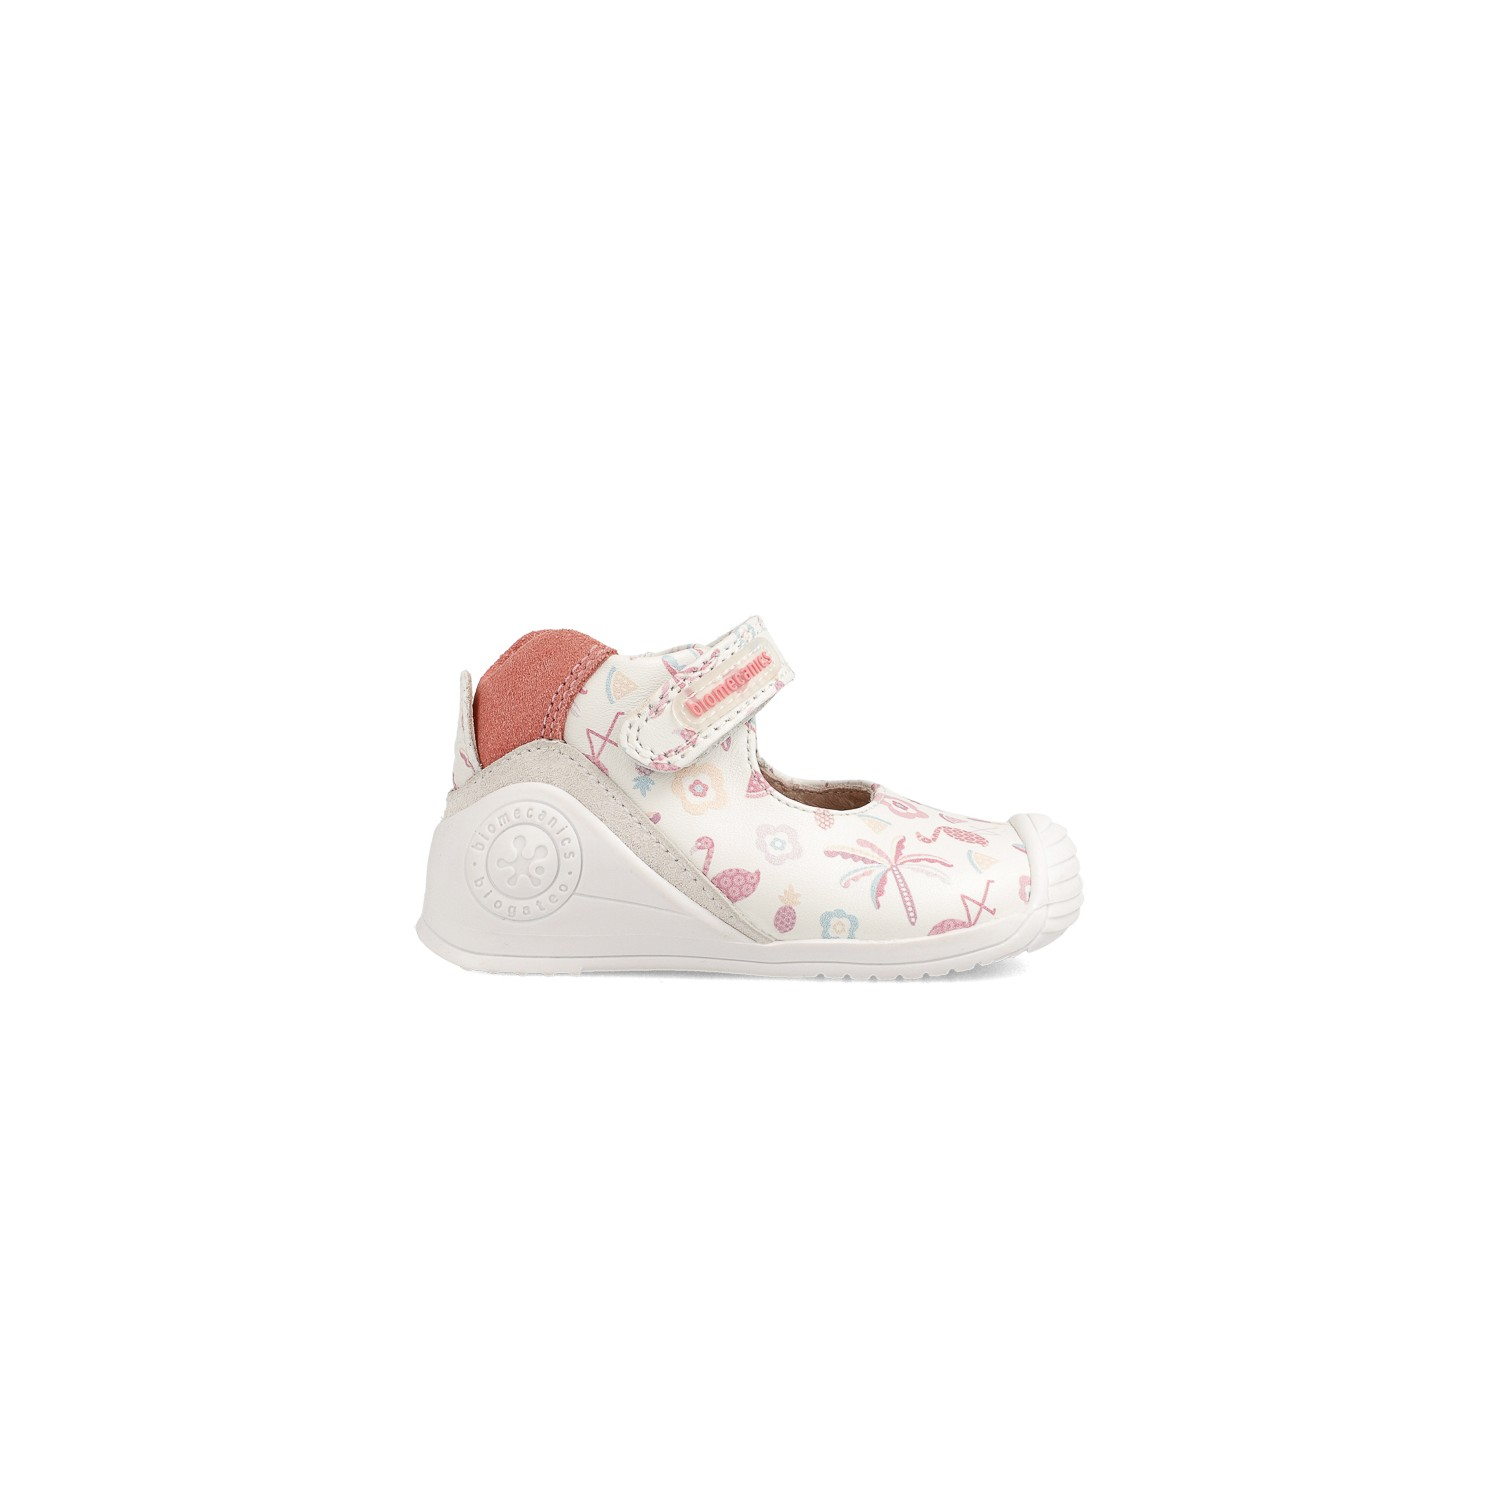 Leather shoes for baby girl Lara